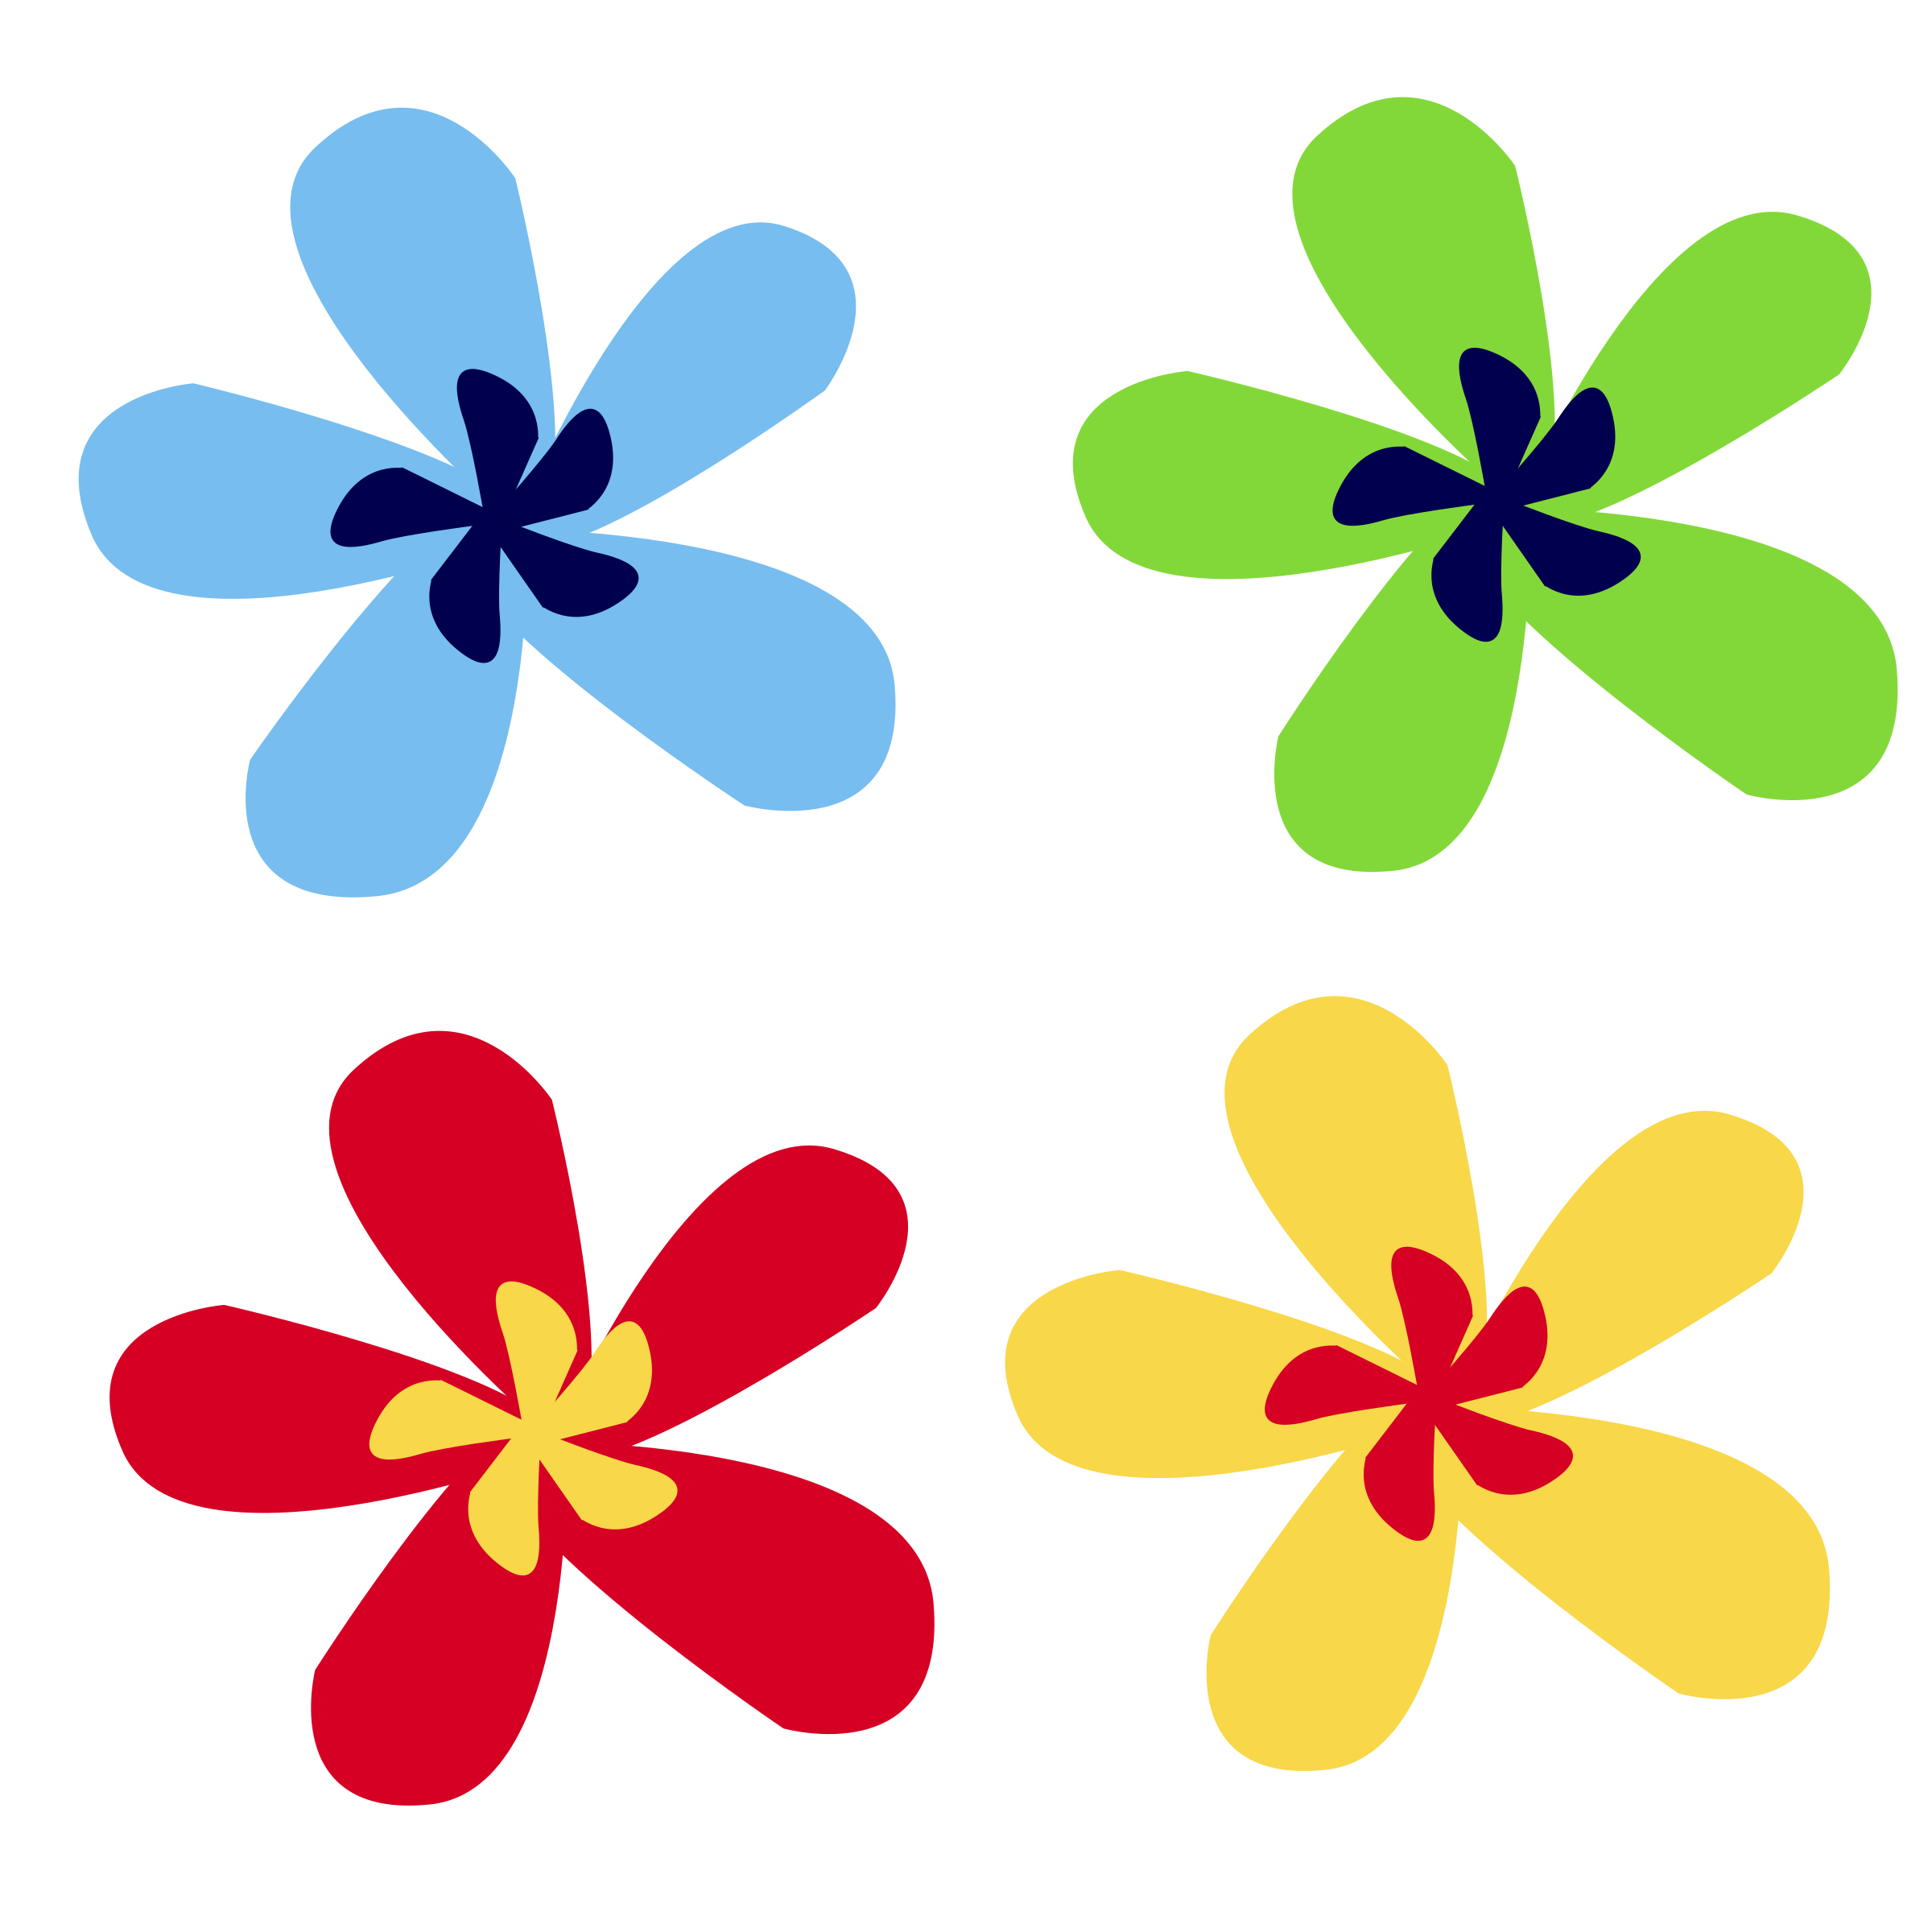 Flower designs clipart black and white Clipart - rainbow flower black and white